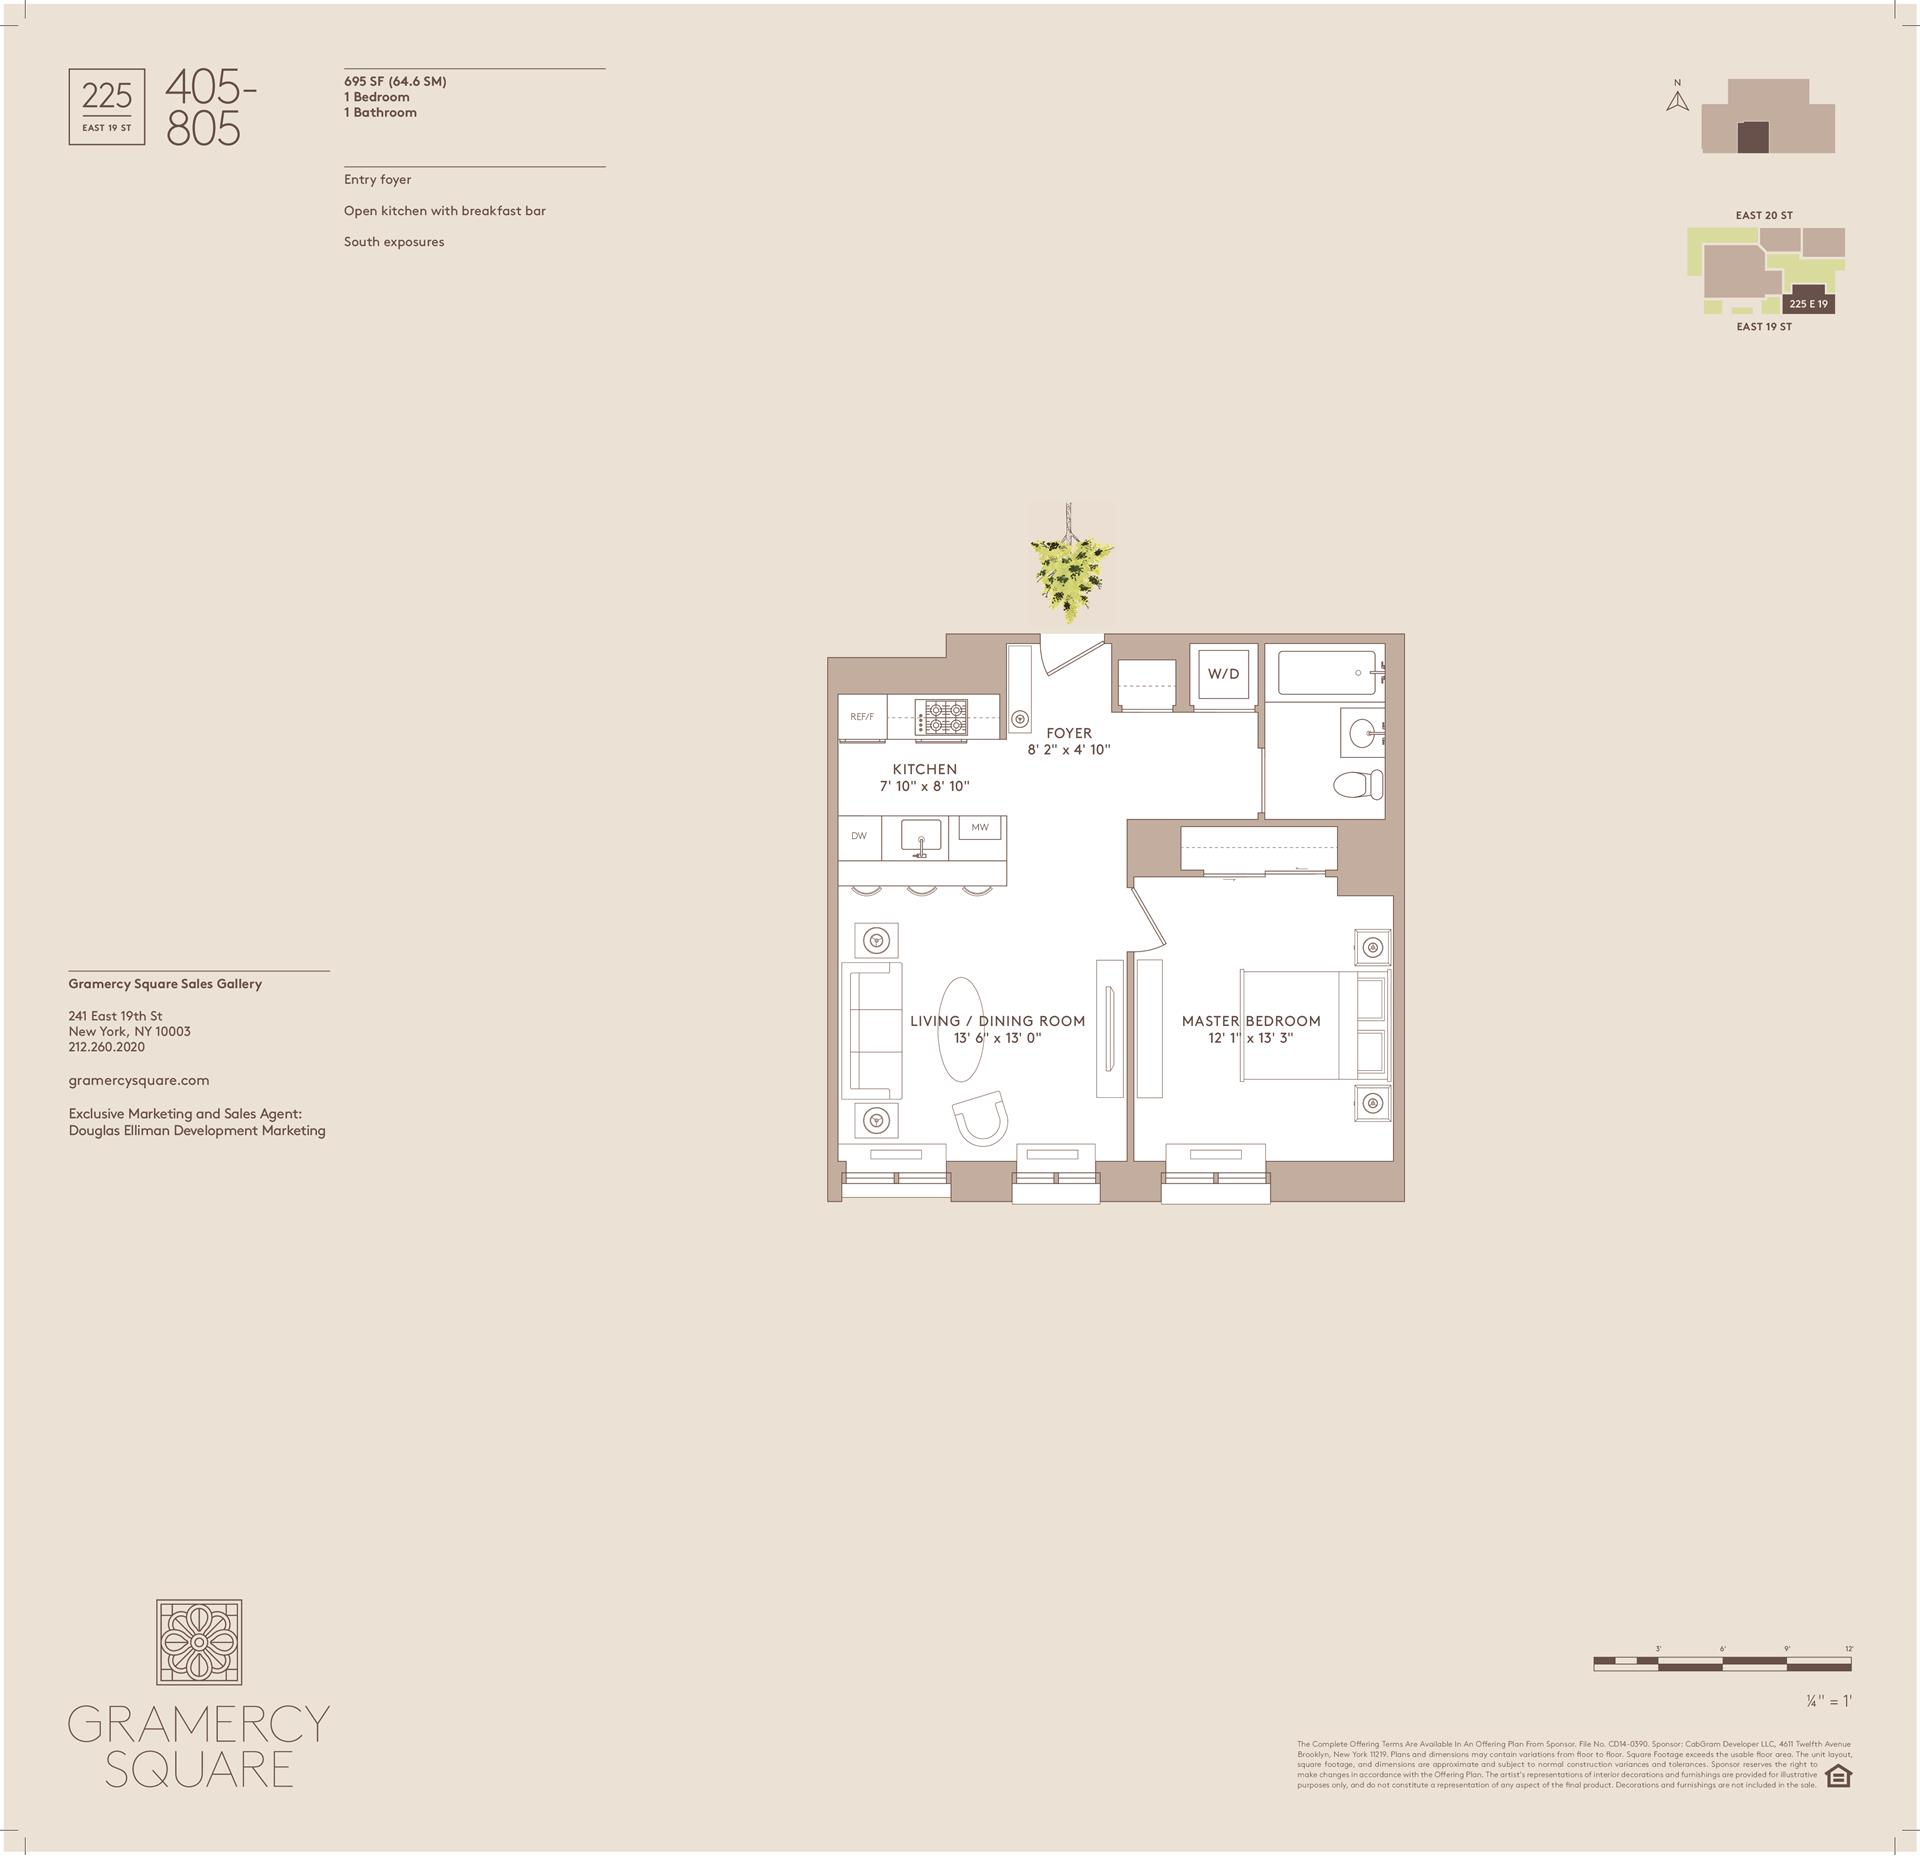 Floor plan of Gramercy Square, 225 East 19th St, 605 - Gramercy - Union Square, New York